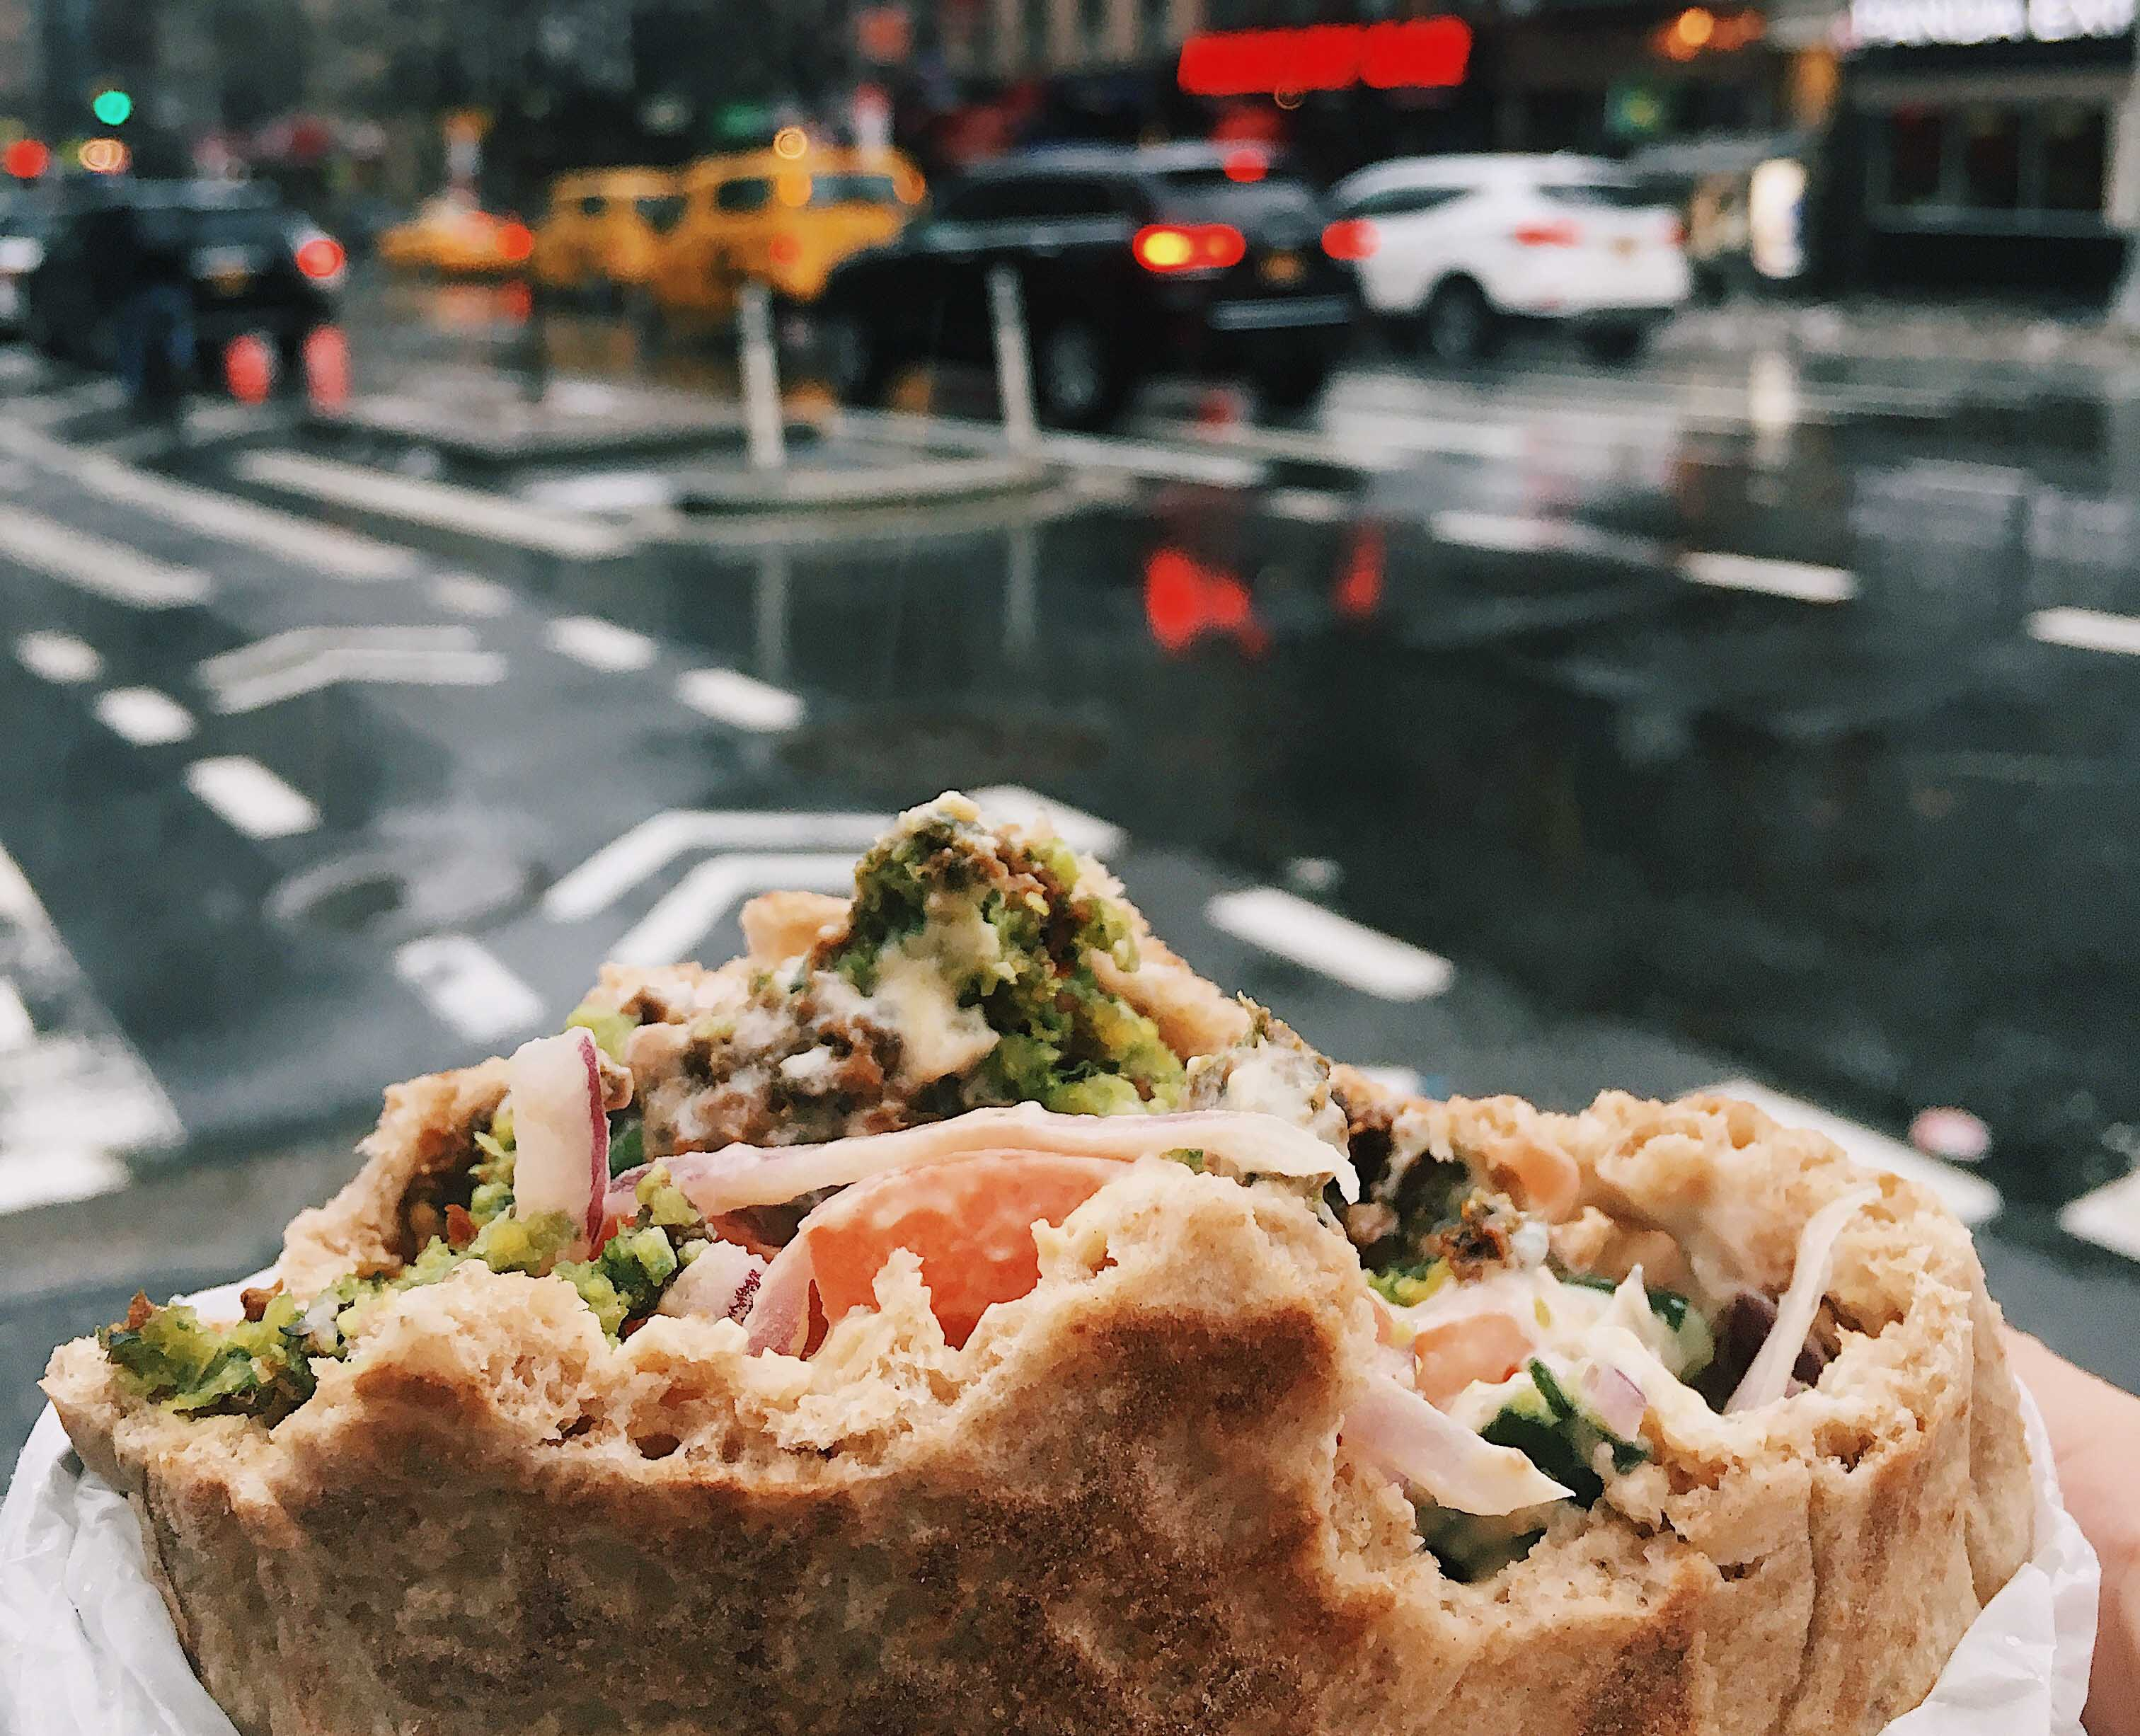 Food from Wrapido - Lunch options in NYC for less than $7